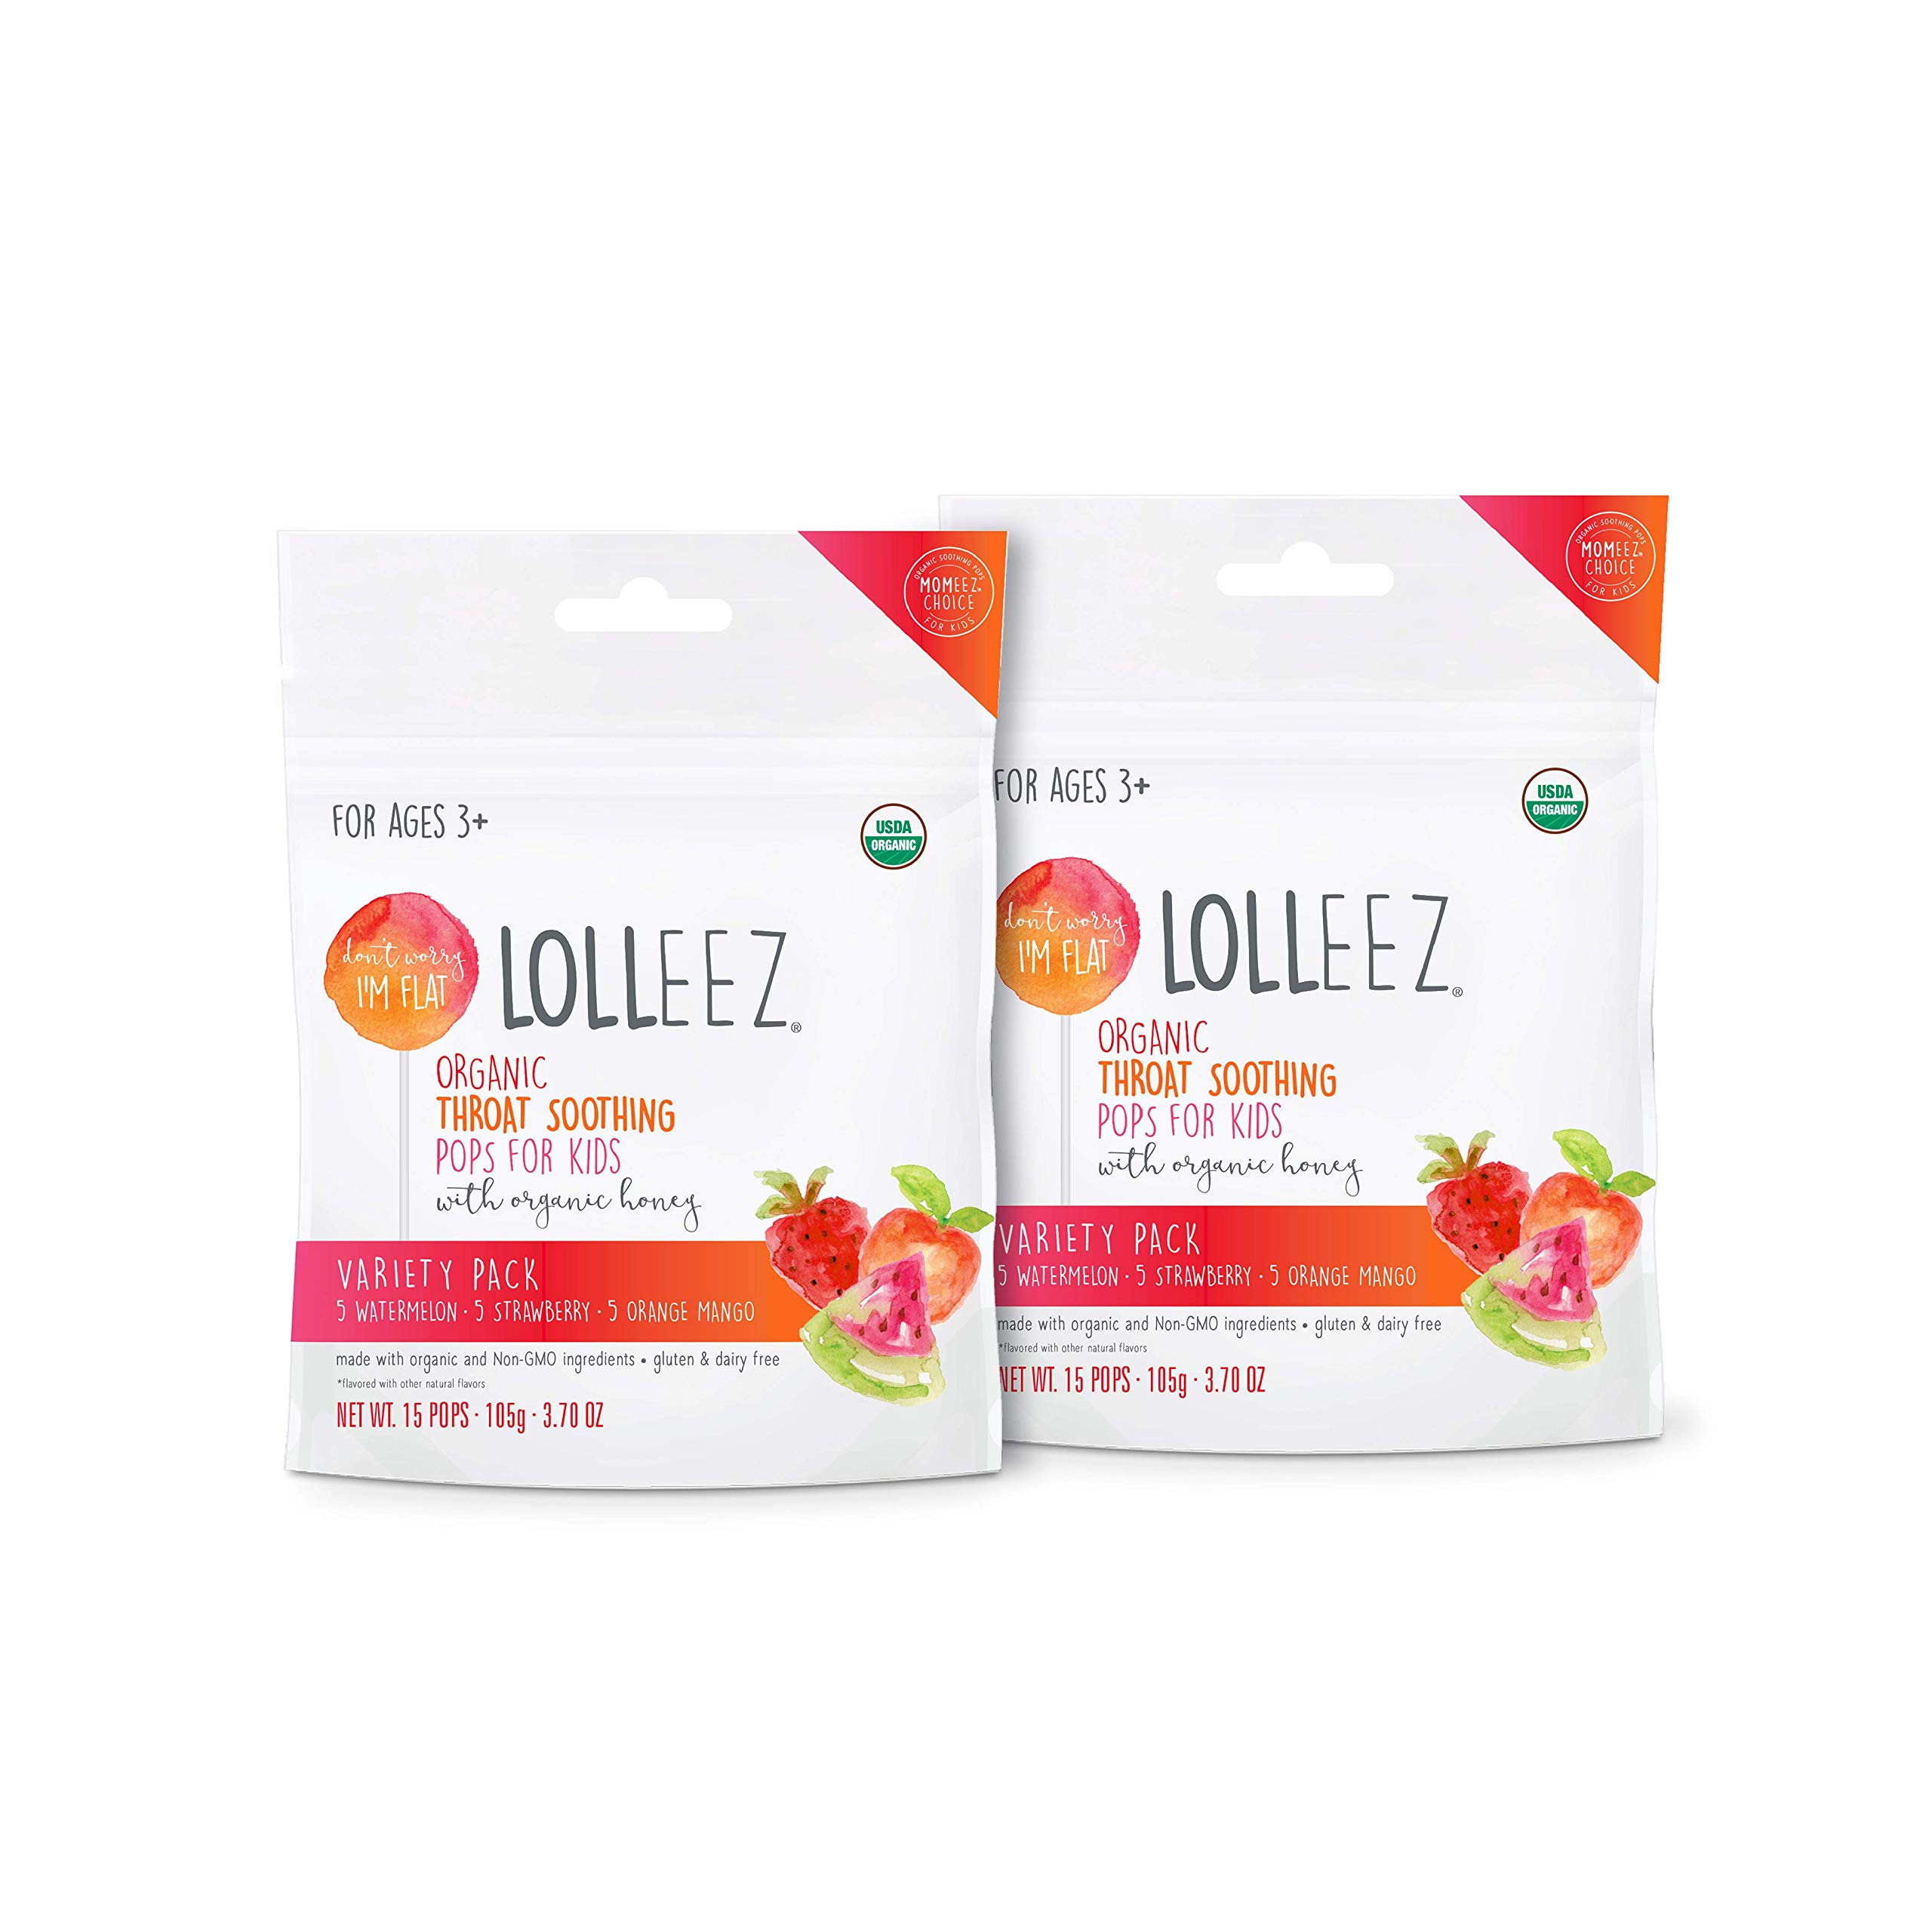 Lolleez Organic Throat Soothing Pops for Kids with Organic Honey - 2pk Multi Pack …